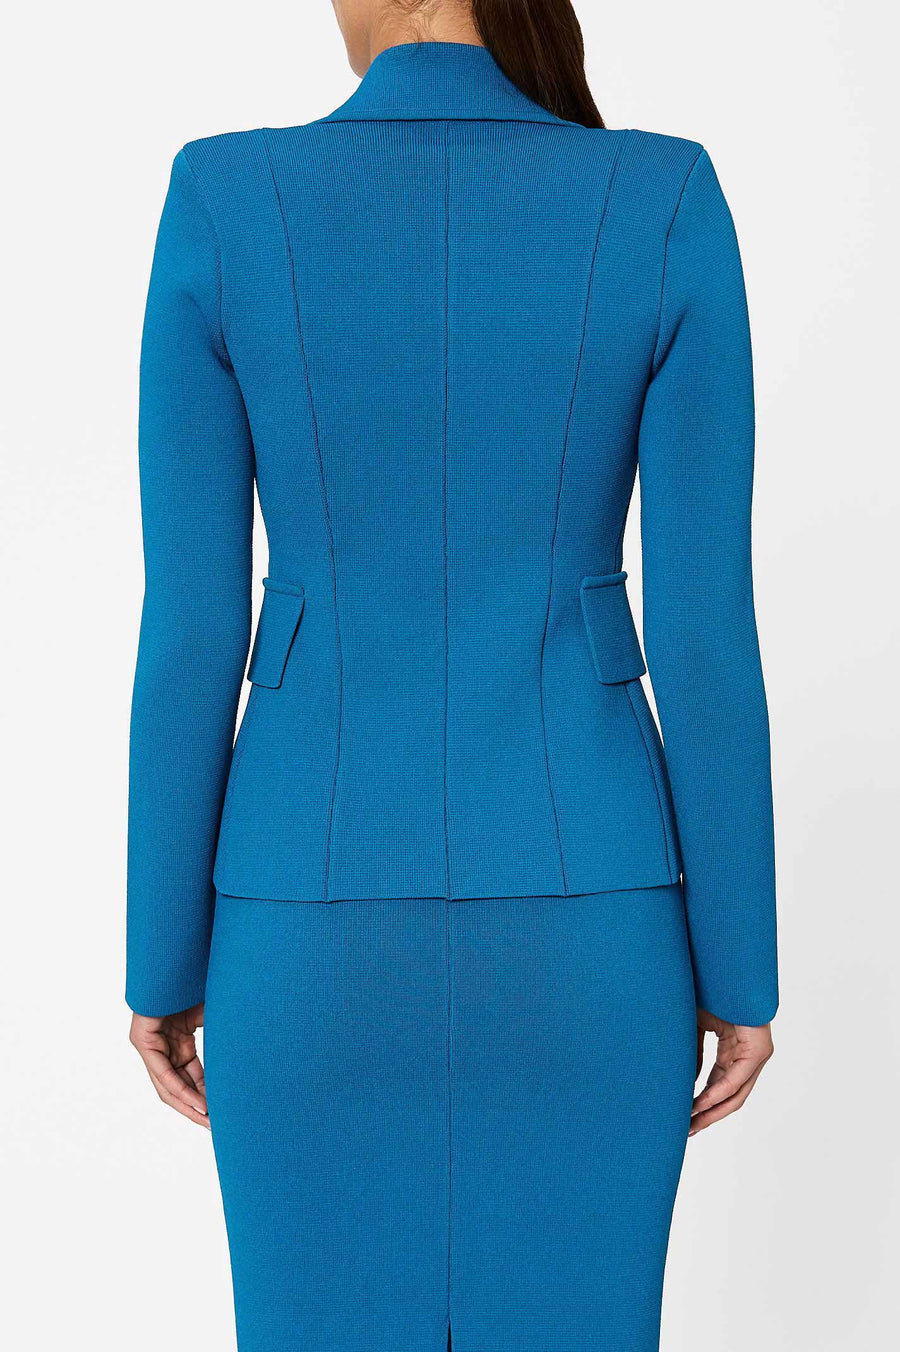 Crepe Knit Tailored Jacket Oceano - Scanlan Theodore